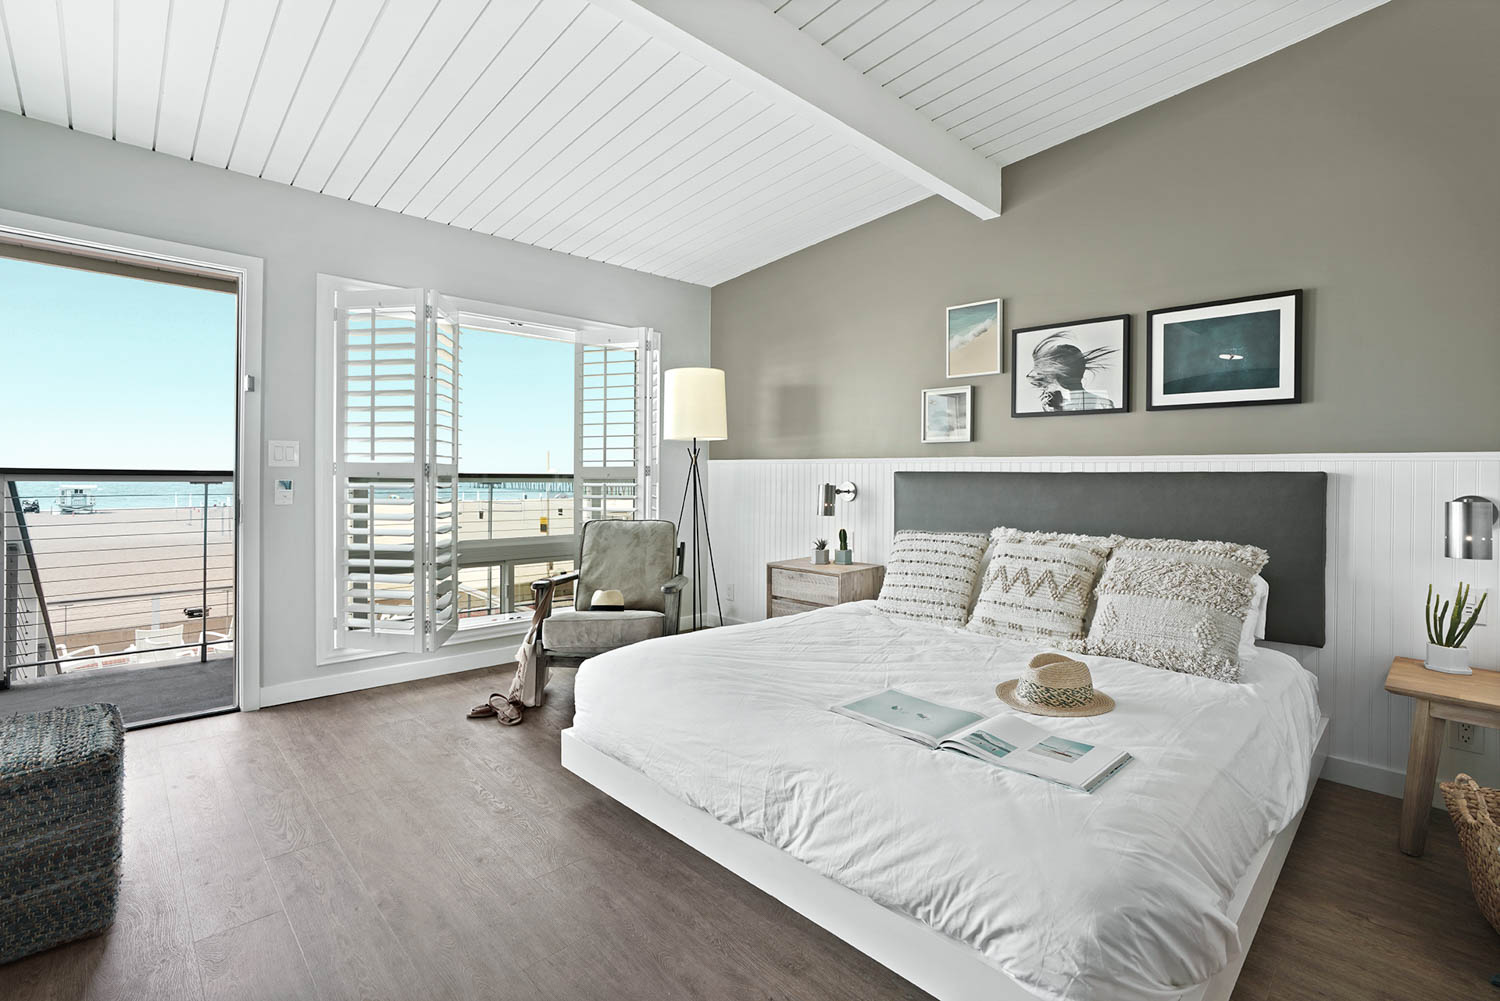 Pacific King Ocean View | 220 sq ft